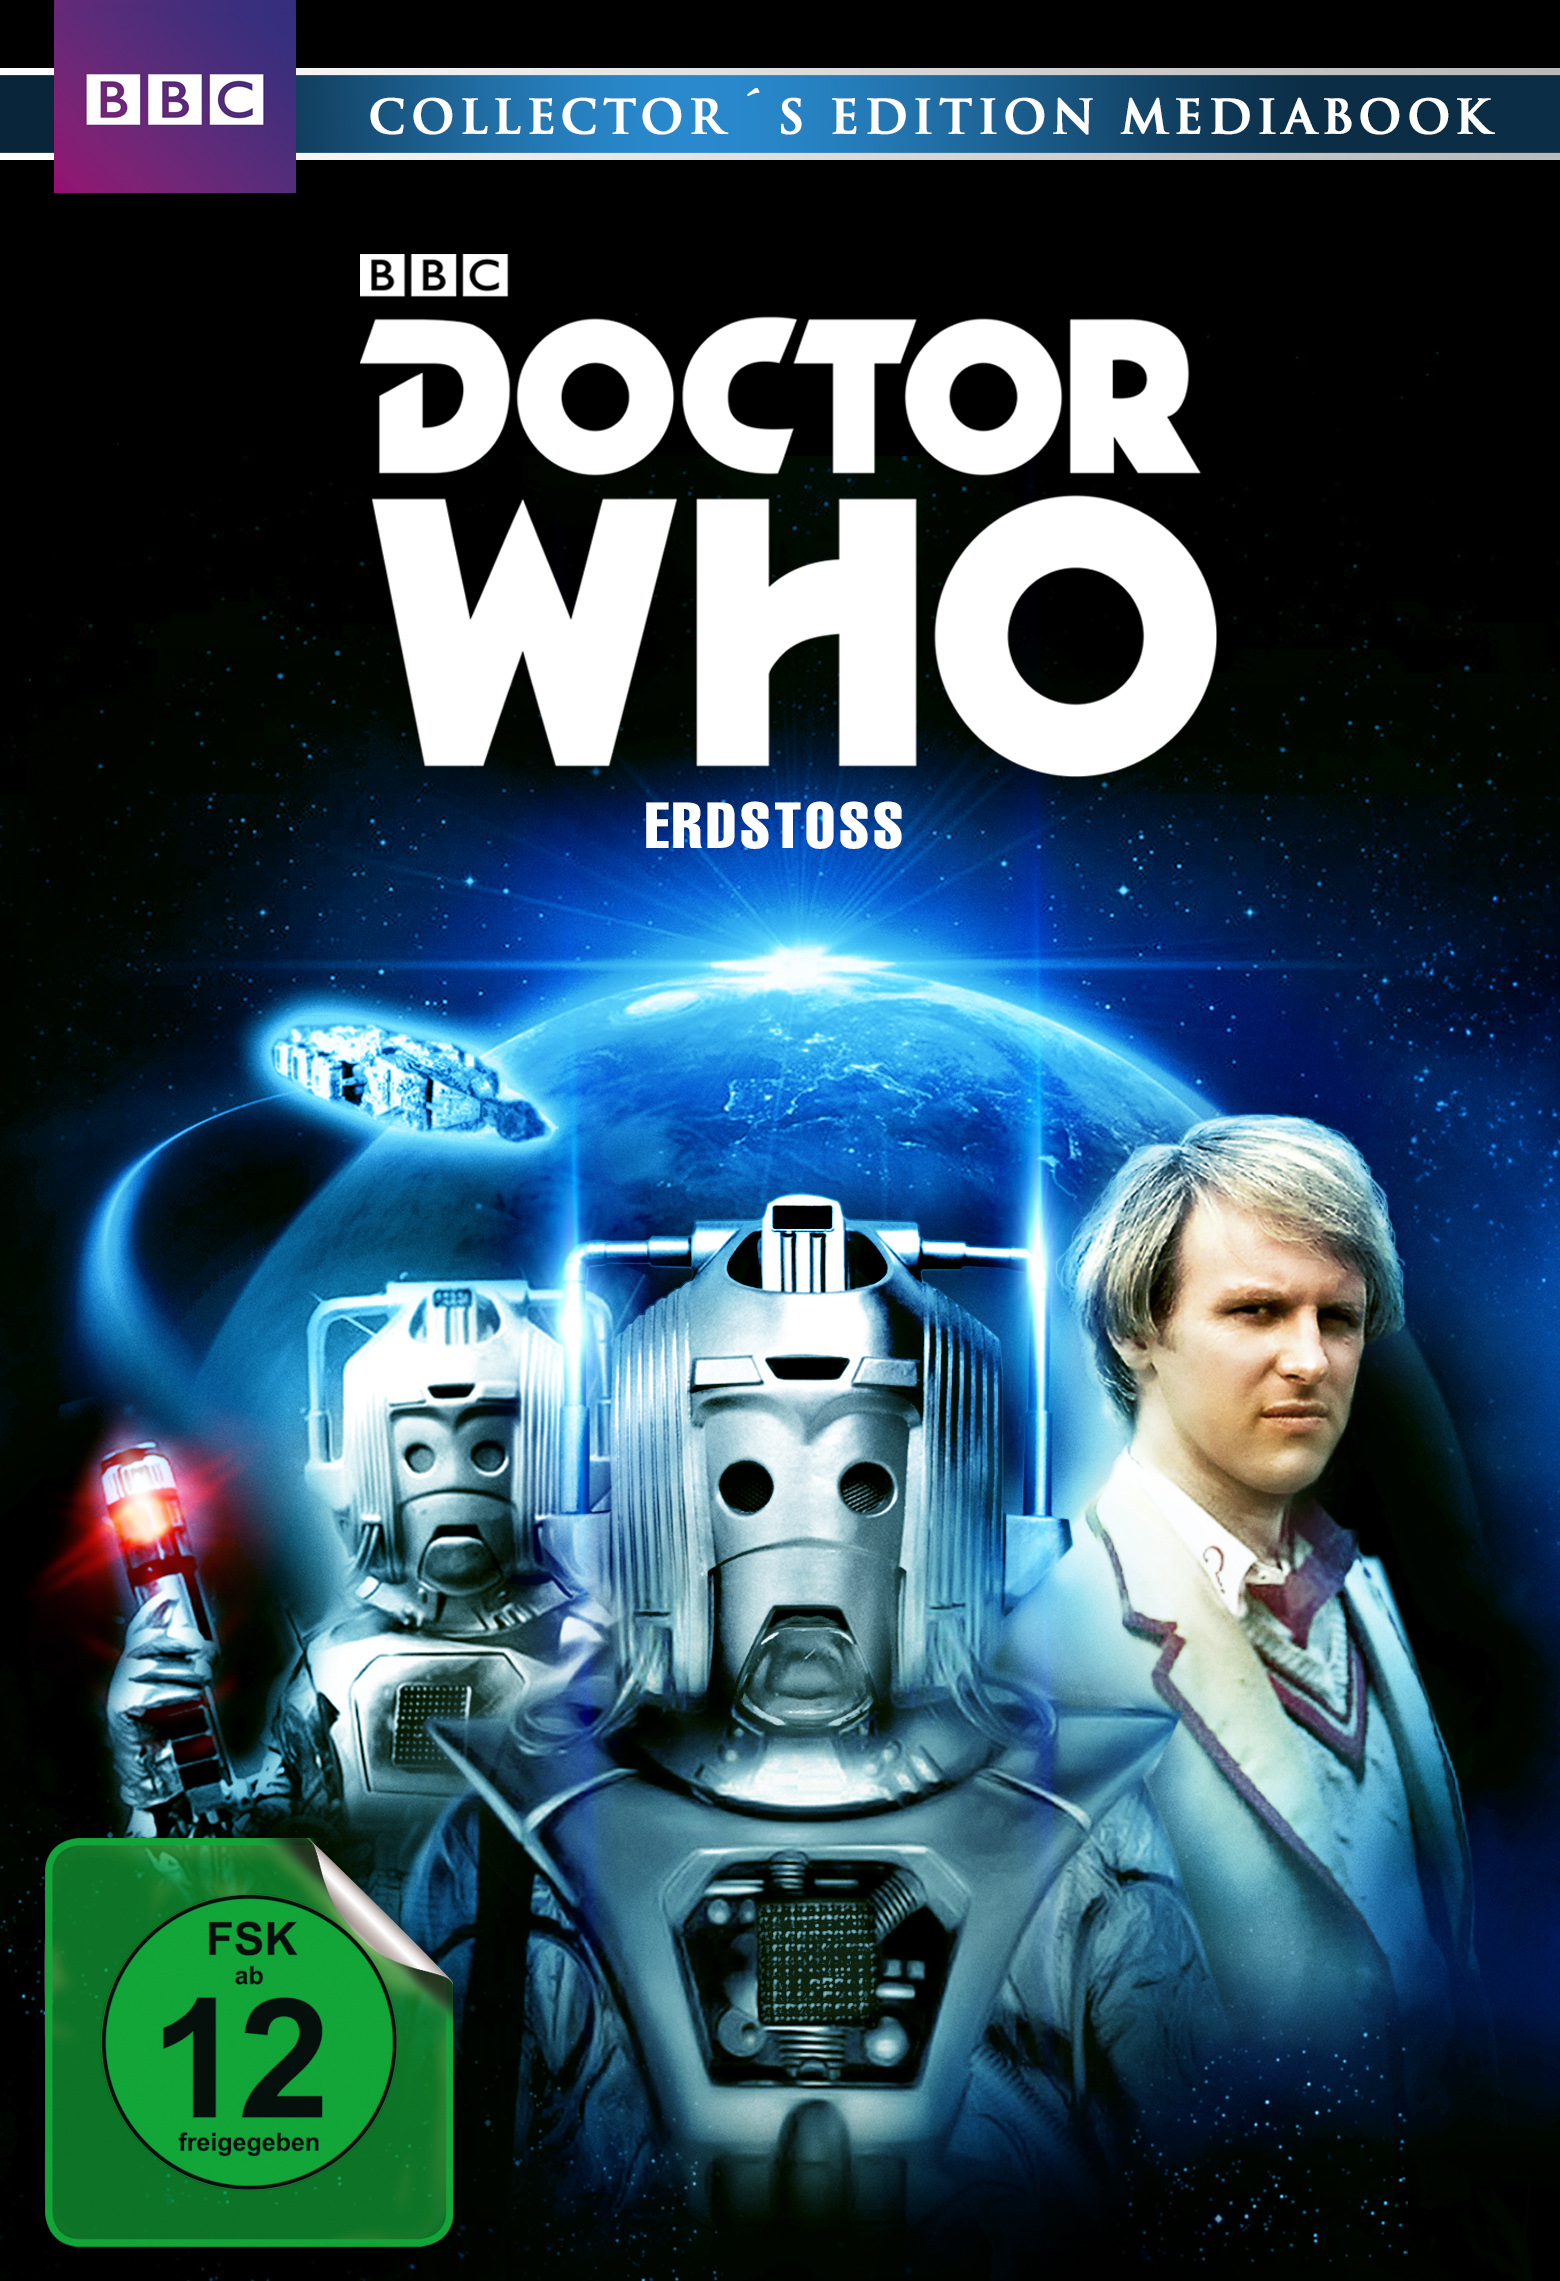 Doctor Who - Fünfter Doktor - Erdstoß - Collectors Edition Mediabook